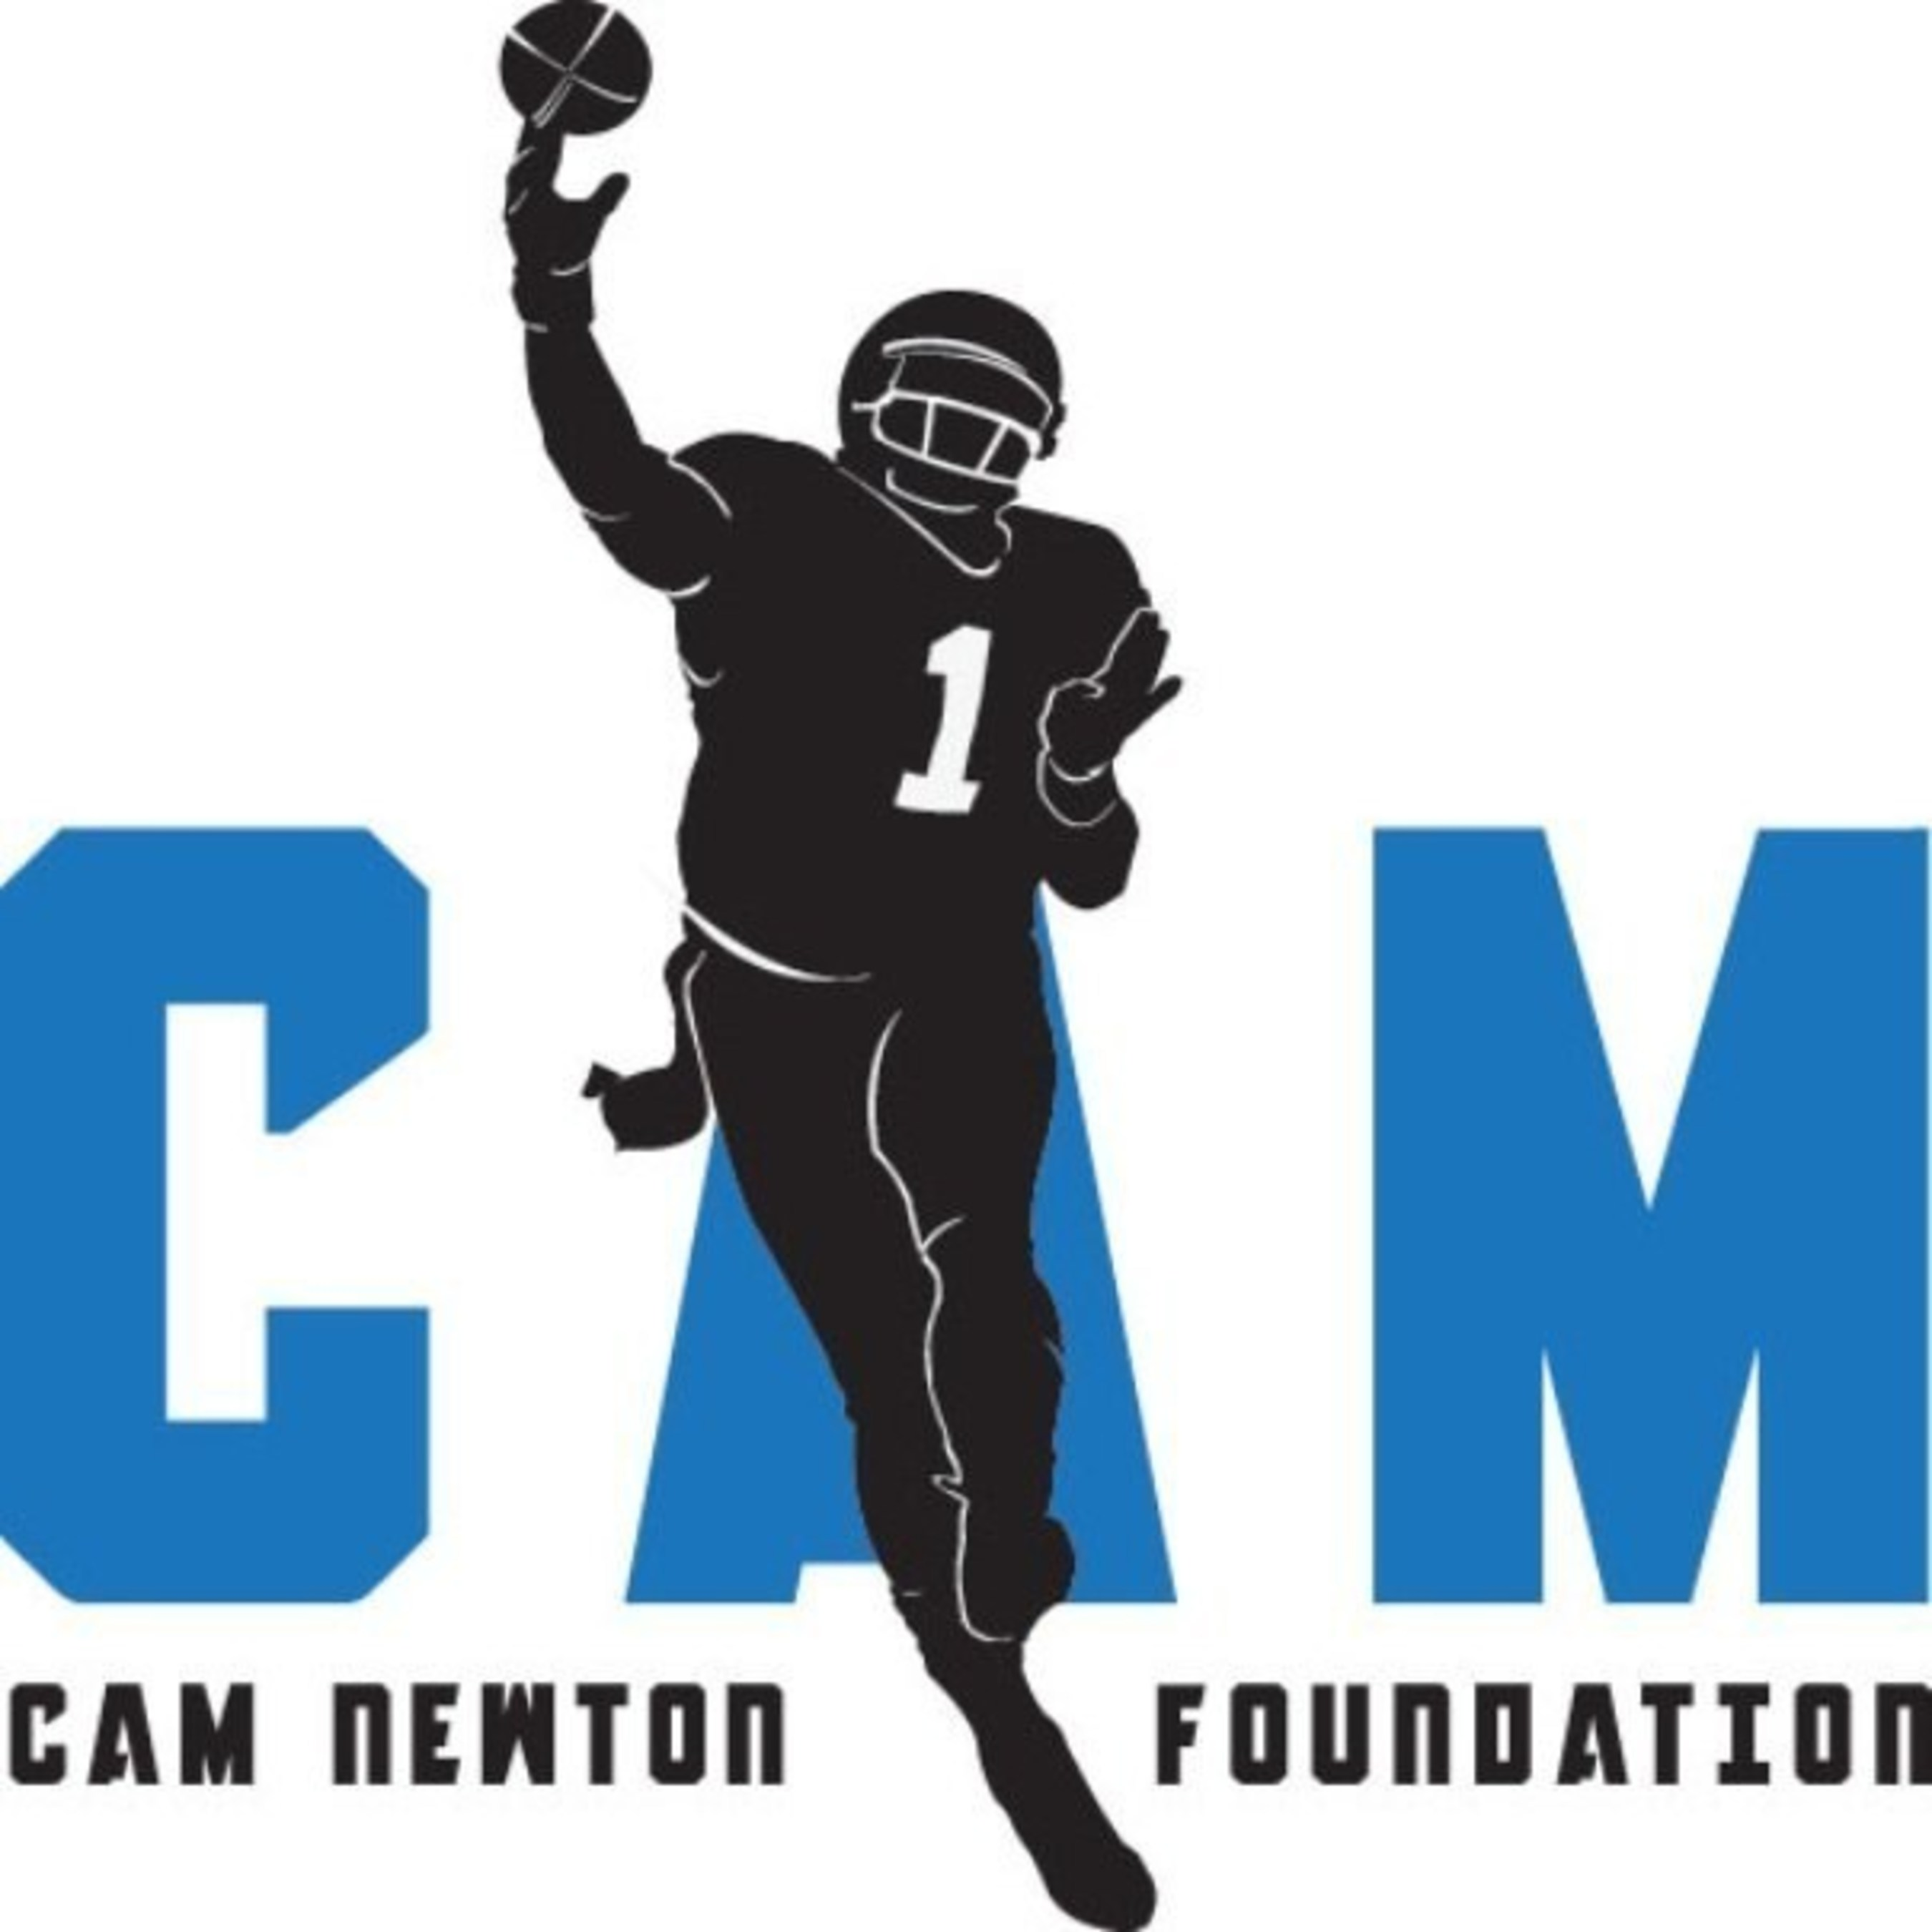 Carowinds, Cam Newton Foundation Score Big with Record Breaking Coaster